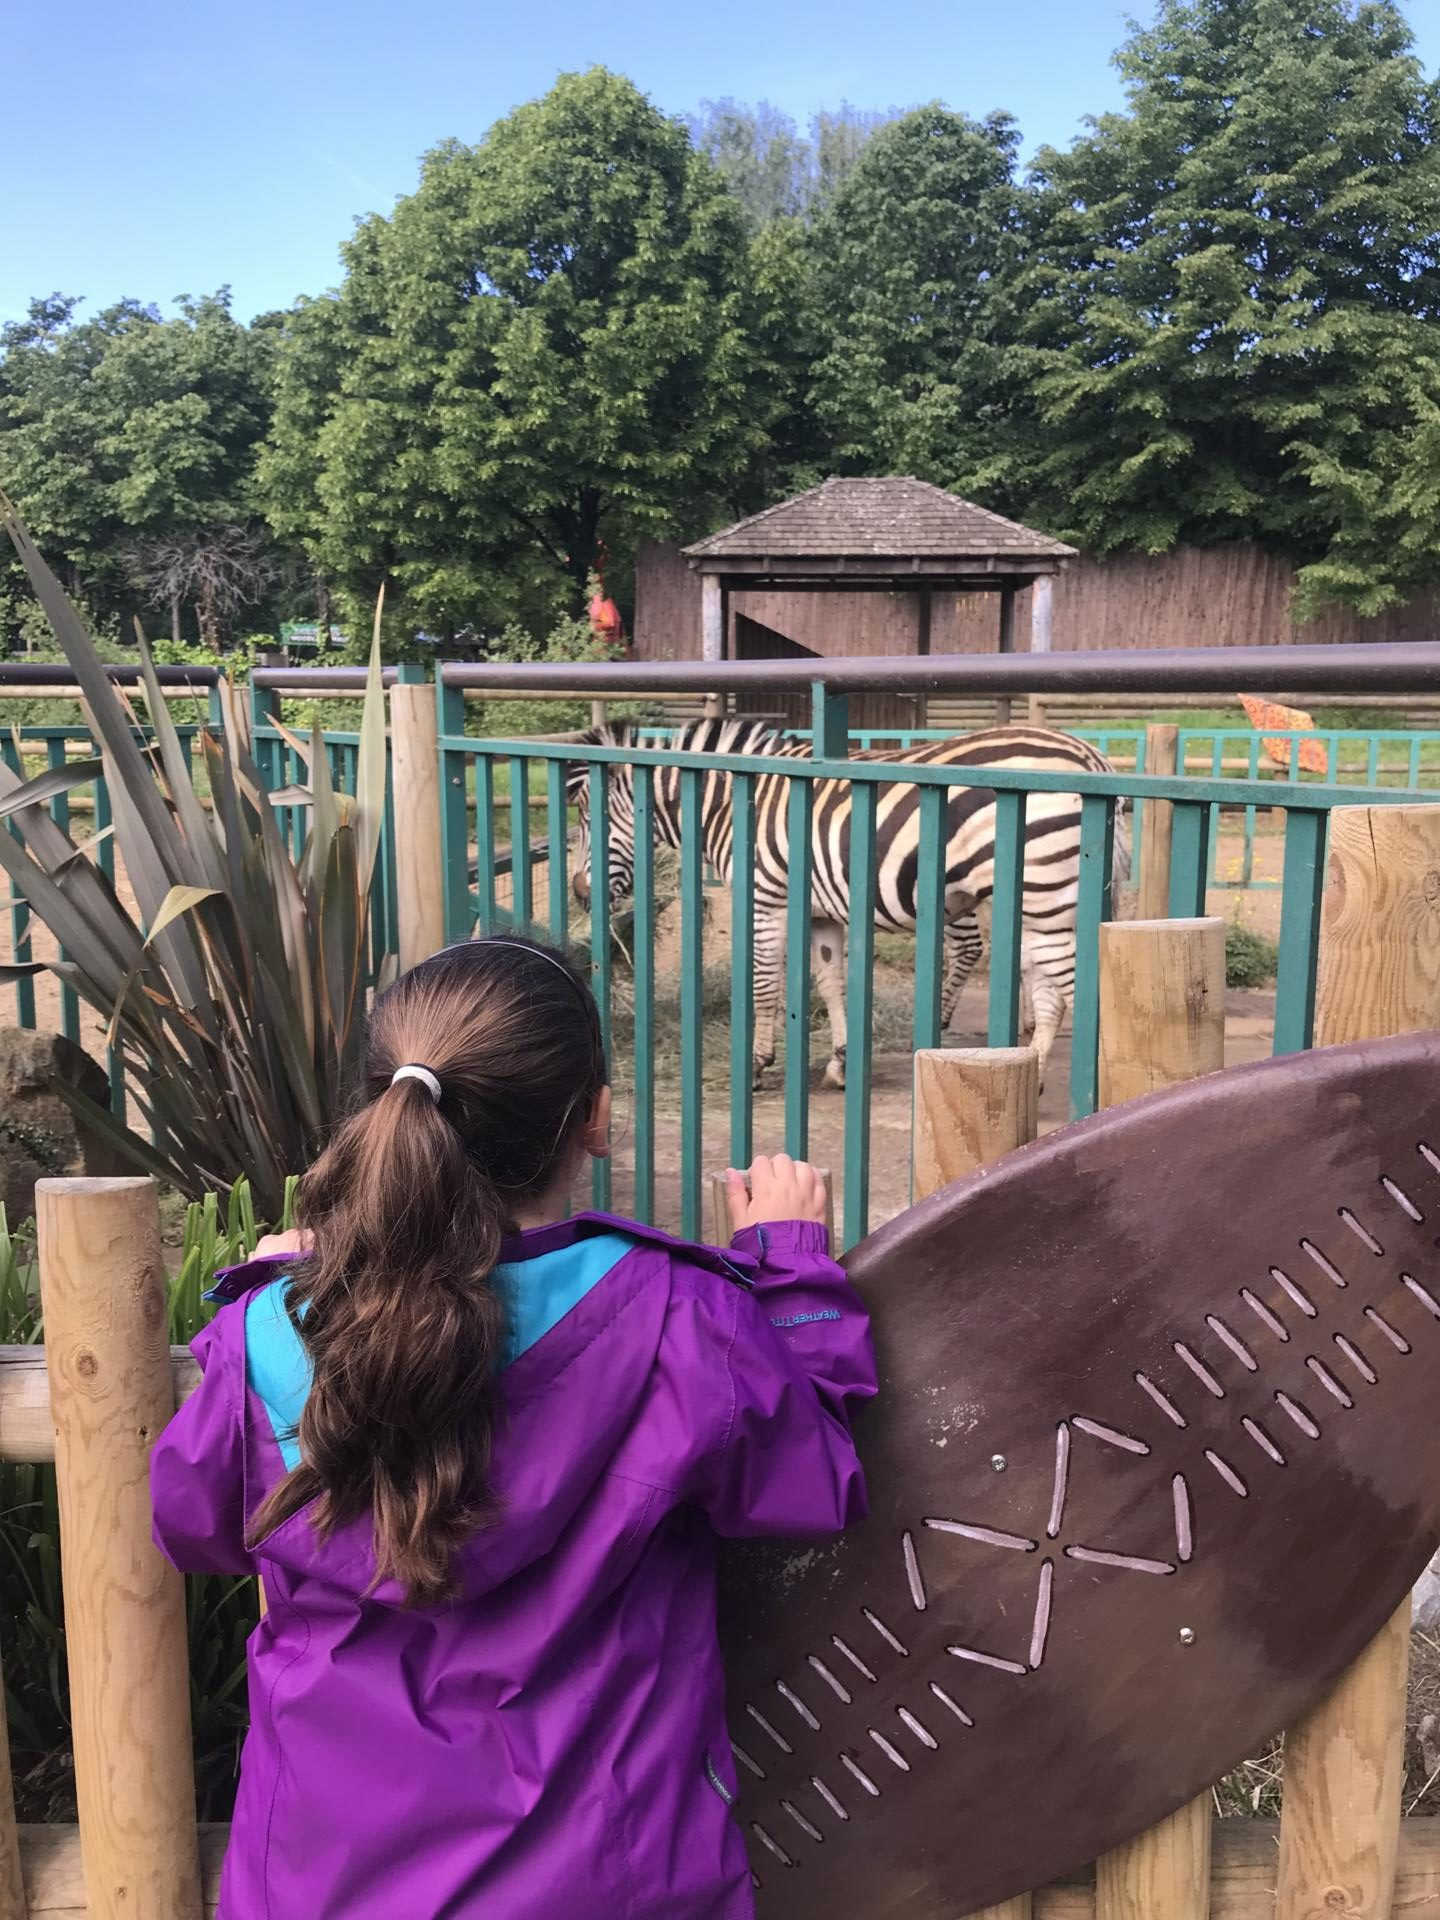 A family day out in Paradise Wildlife Park, Hertfordshire